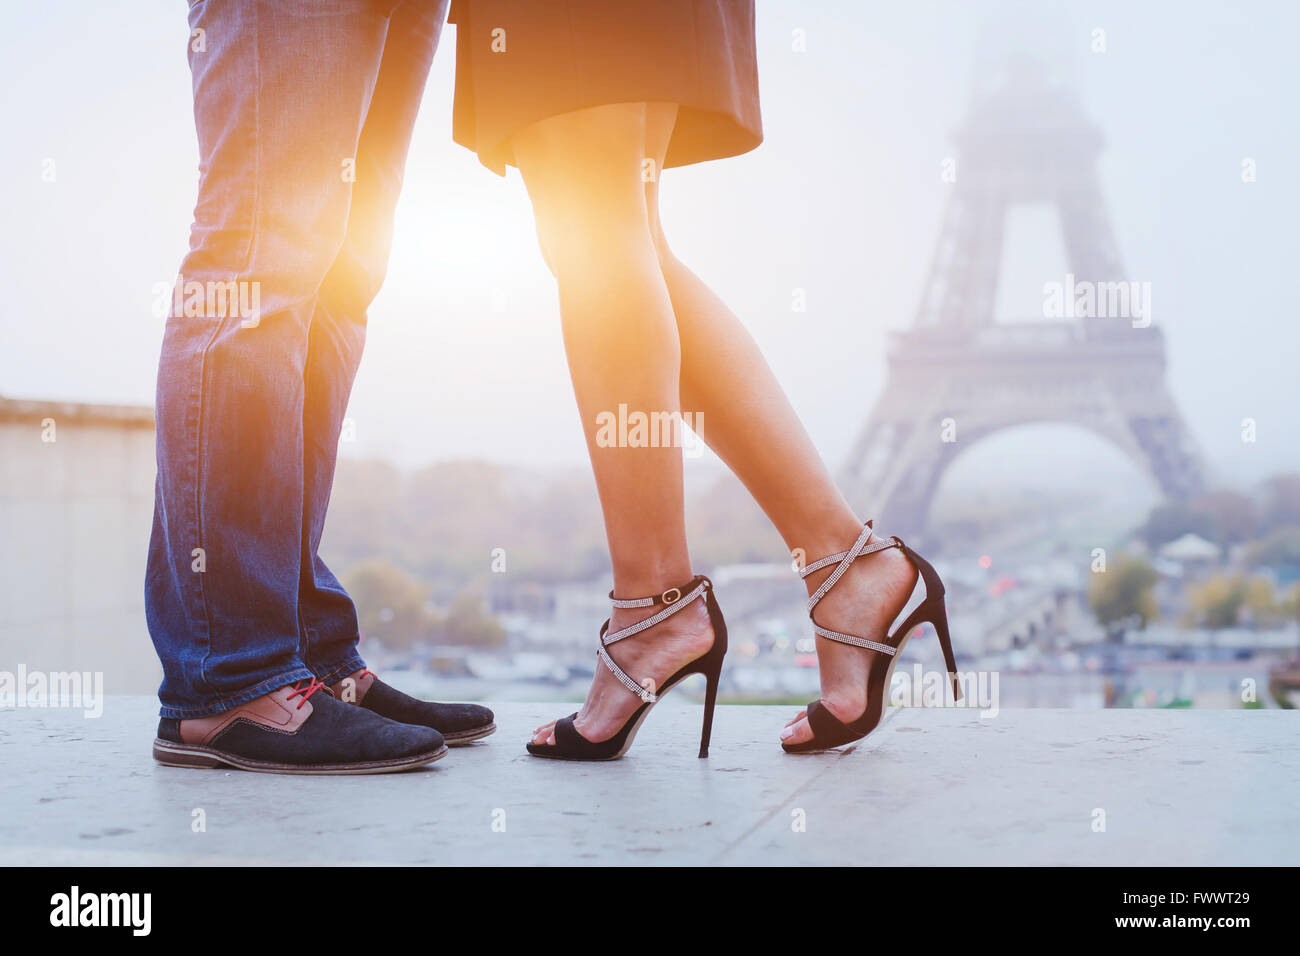 romantic holidays in Paris, feet of couple kissing near Eiffel tower - Stock Image